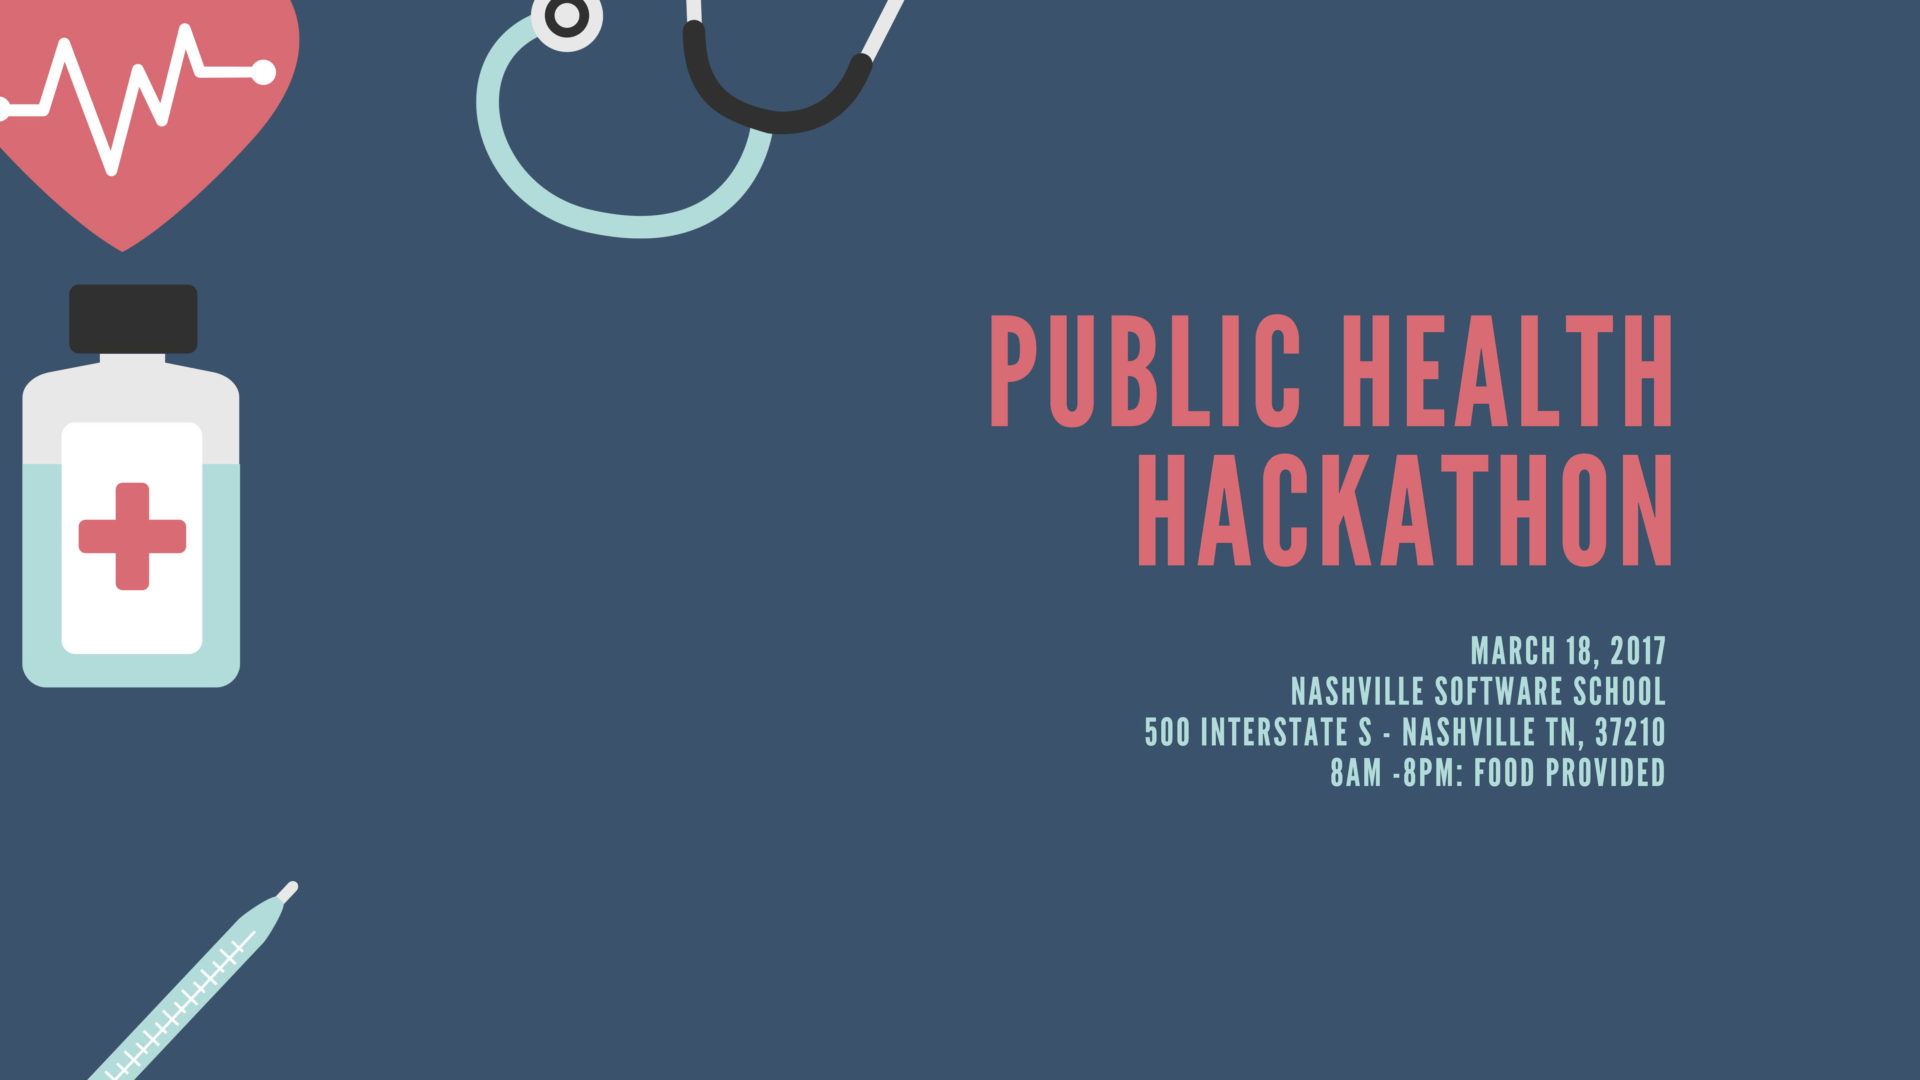 Community Mapping Public Health Hackathon